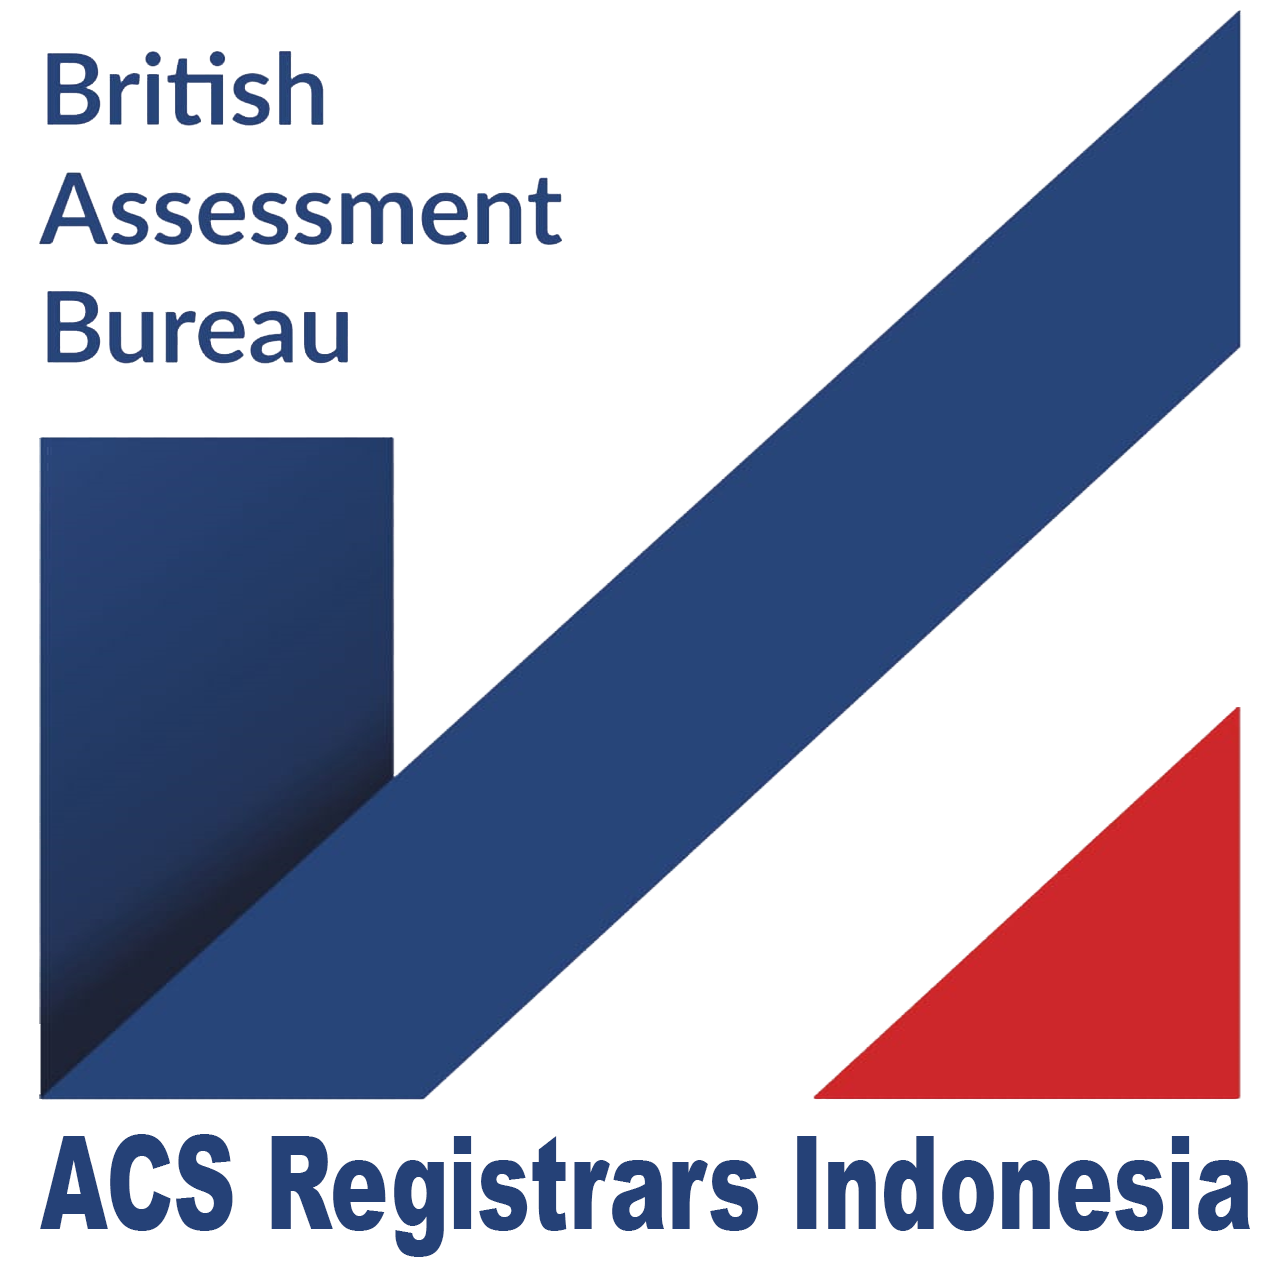 British Assessment Bureau